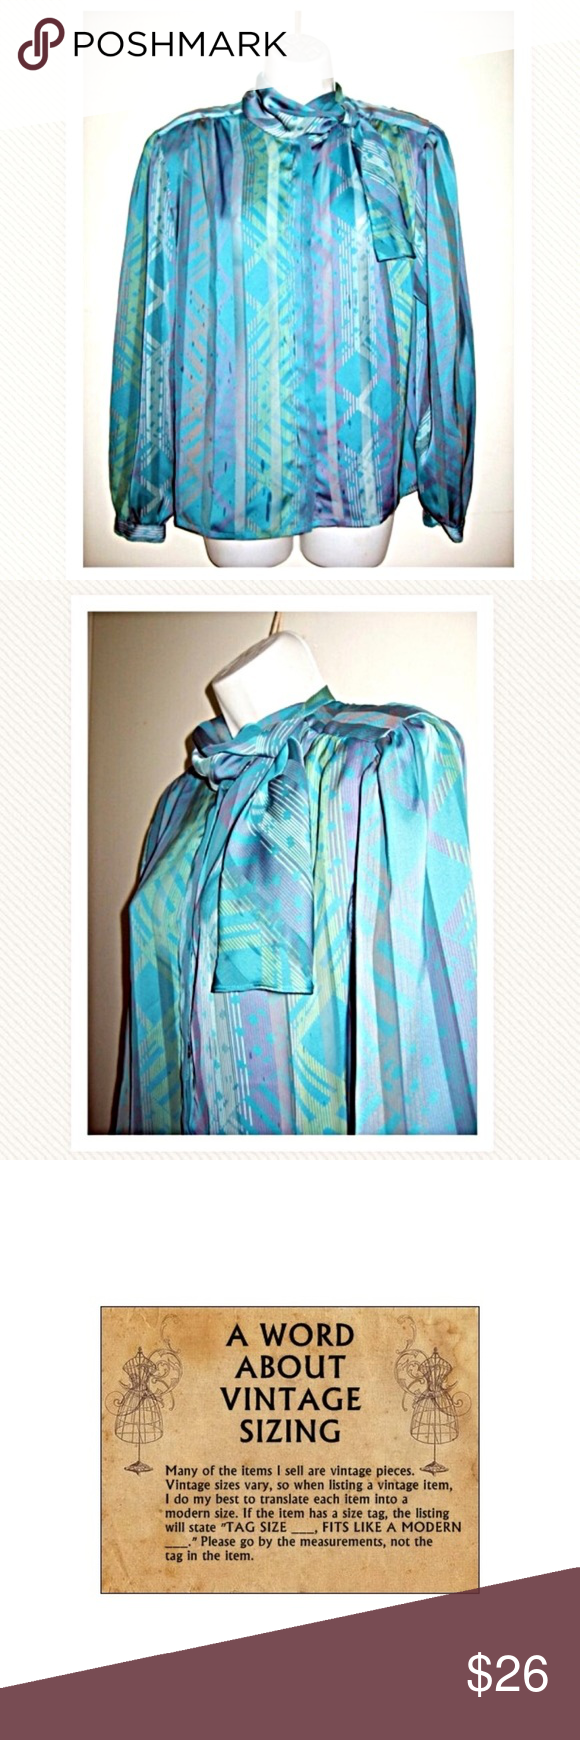 VTG 70s High Collar Bow Secretary Blouse Aqua L Gorgeous NICOLA high collar bow blouse.  Polyester chiffon in a pretty aqua/turquoise stripe.  Unique half bow at neck. Concealed button front.  Small shoulder pads, and slightly puffed sleeves.   Tag size 14. Fits like a L  Bust: 42